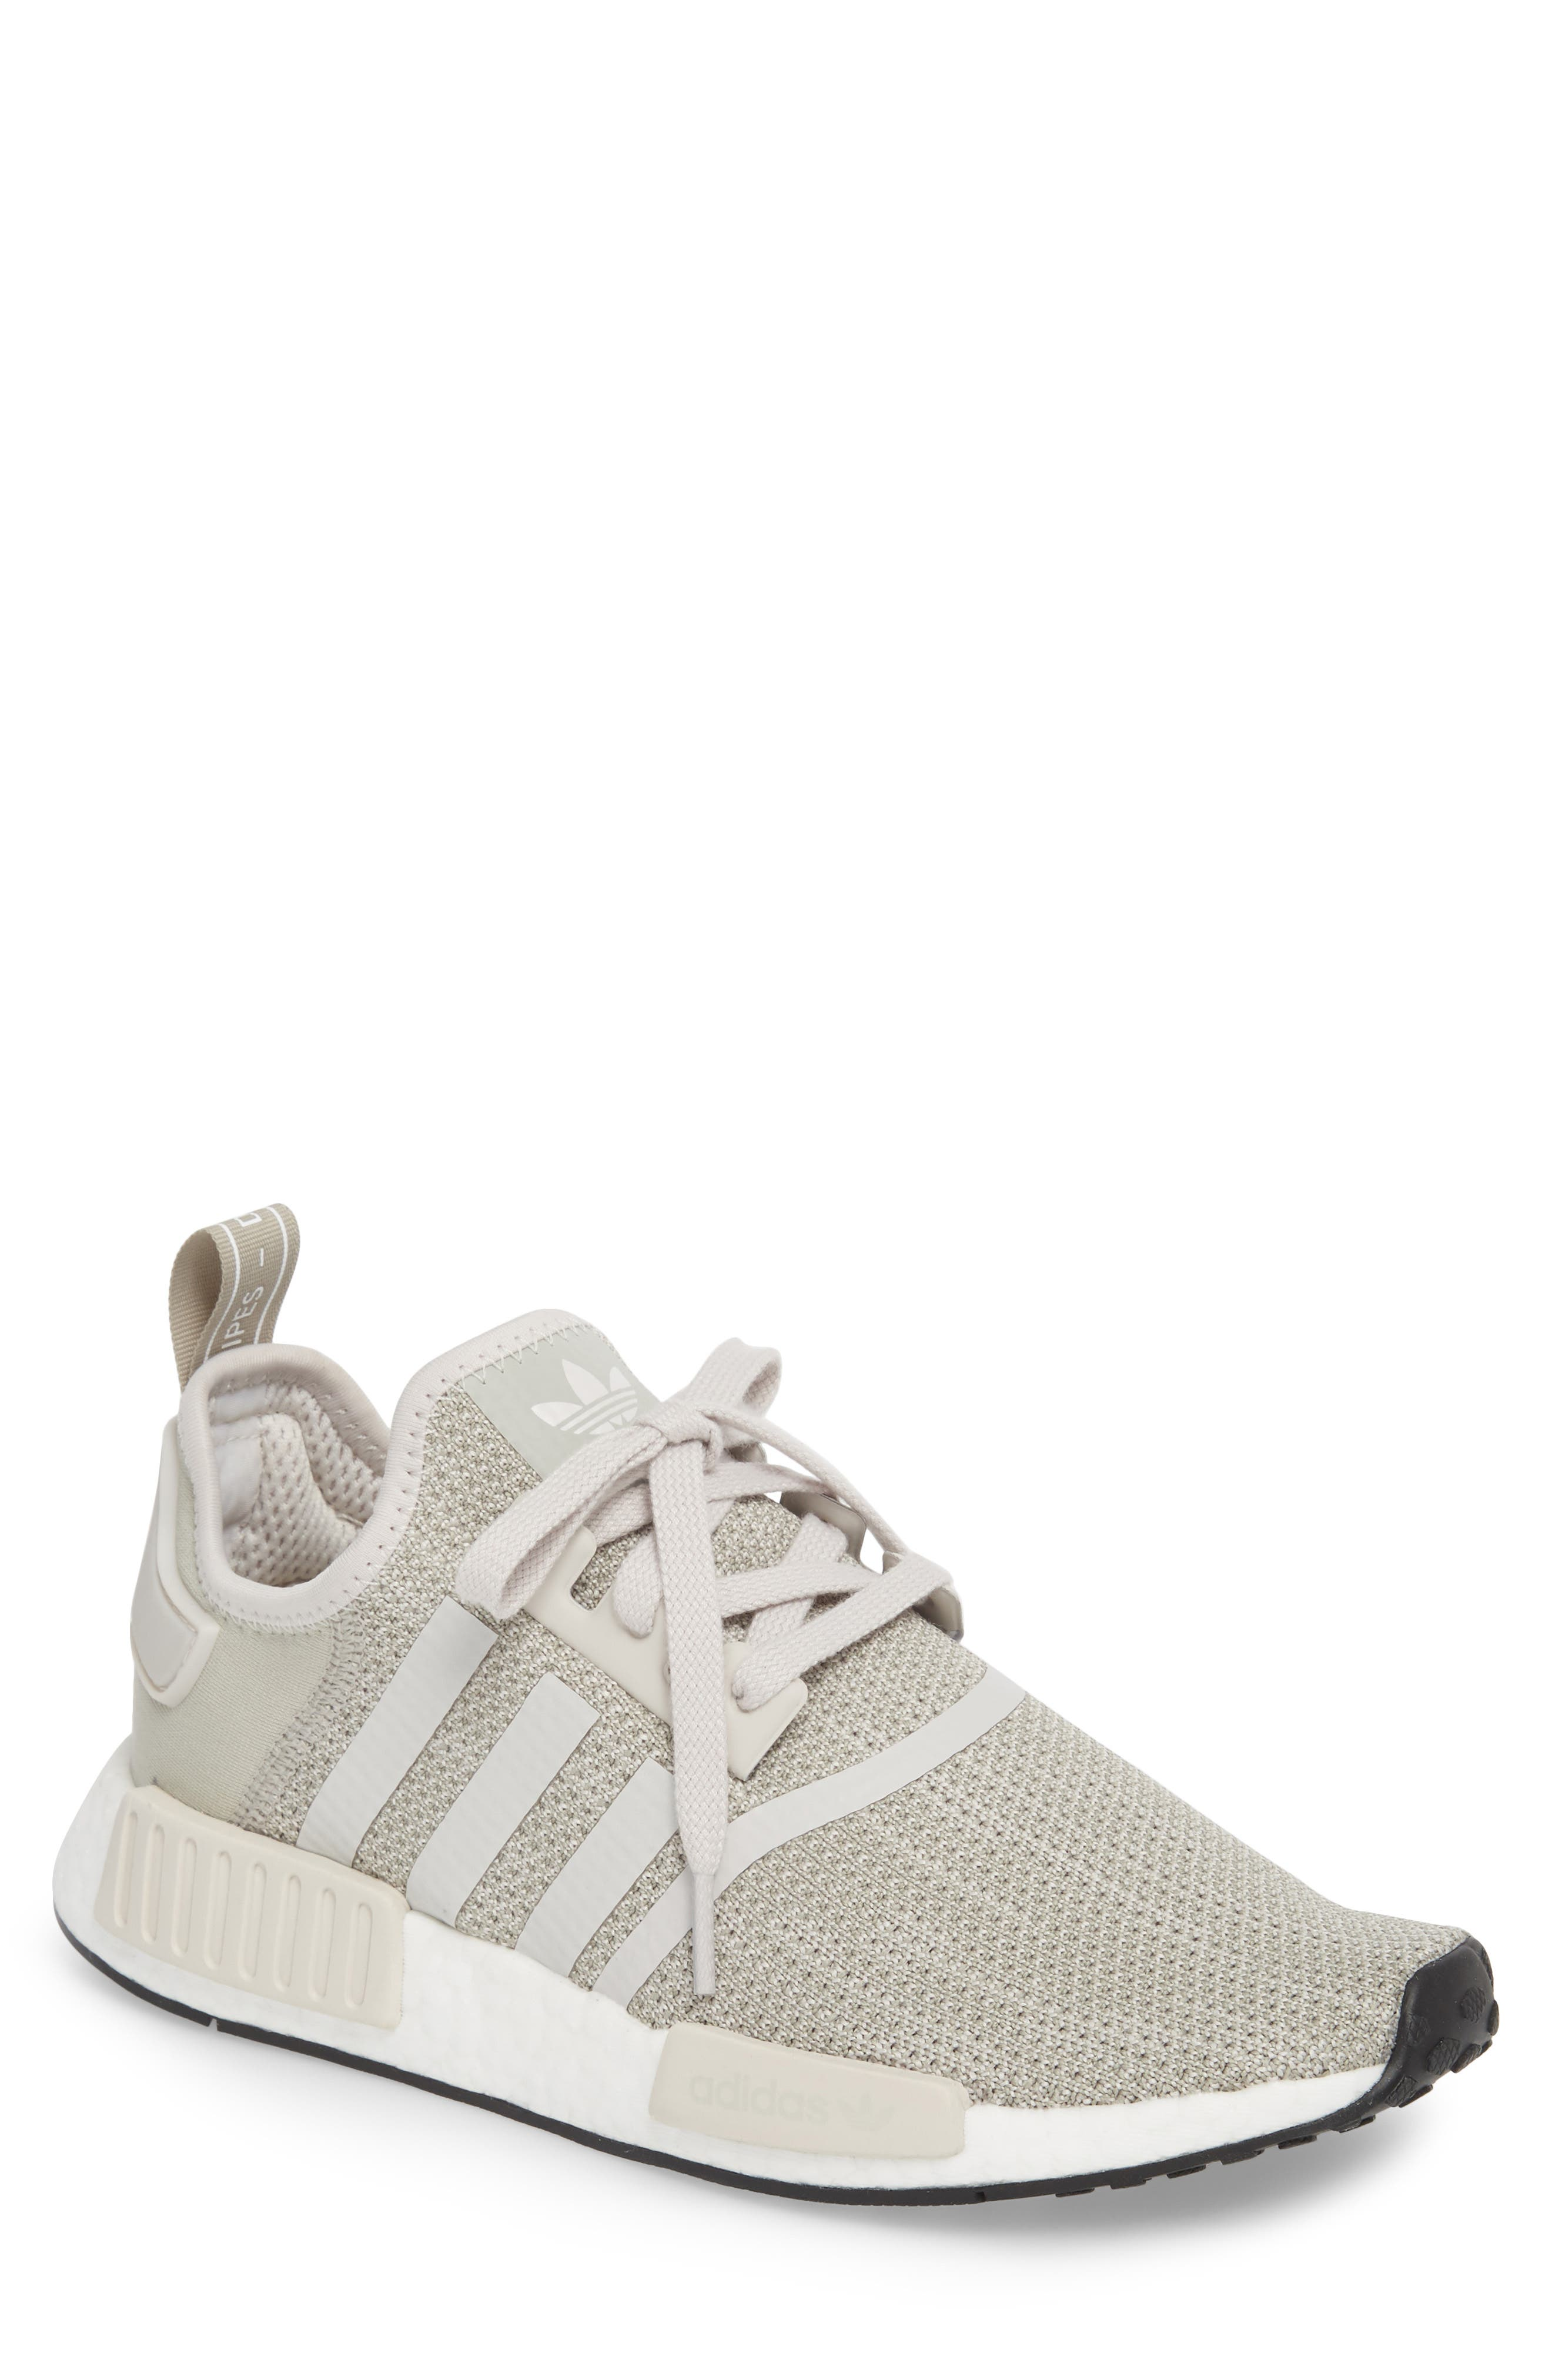 NMD_R1 Sneaker,                         Main,                         color, 205